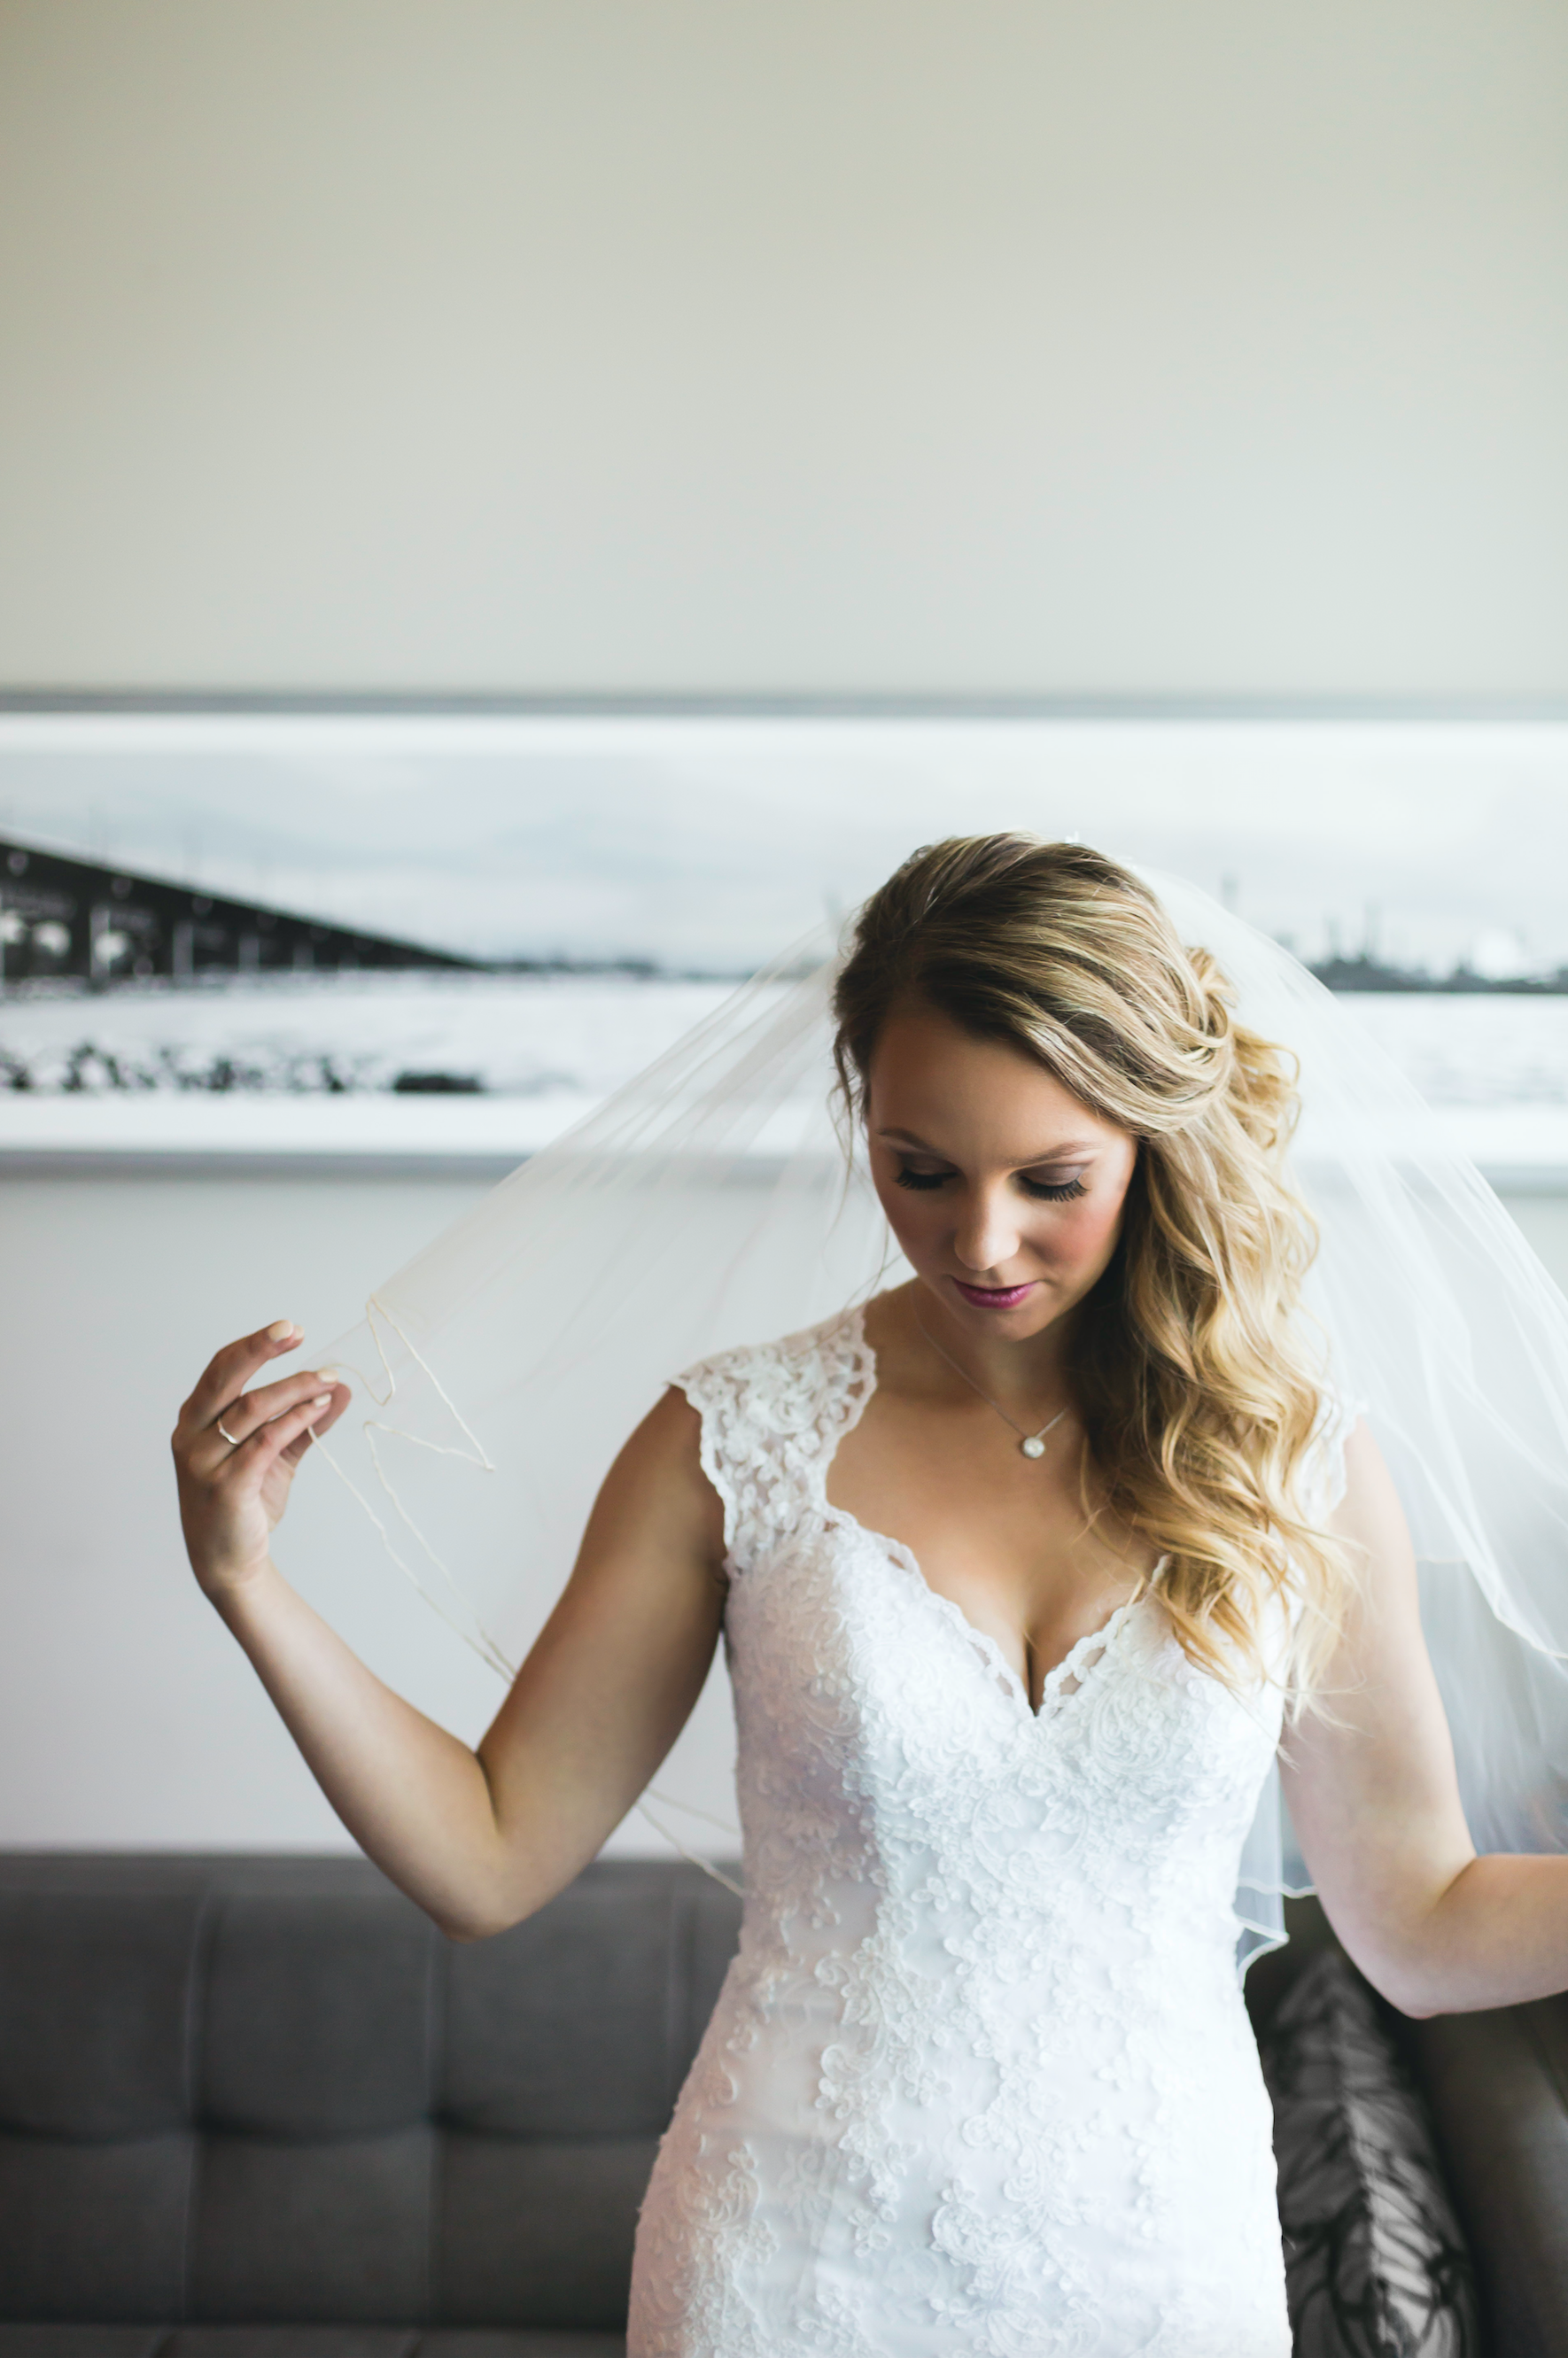 Moments-by-Lauren-Hamilton-Wedding-Photographer-Tamahaac-Club-Niagara-Toronto-Burlington-Photography-Photo-Image-6.png